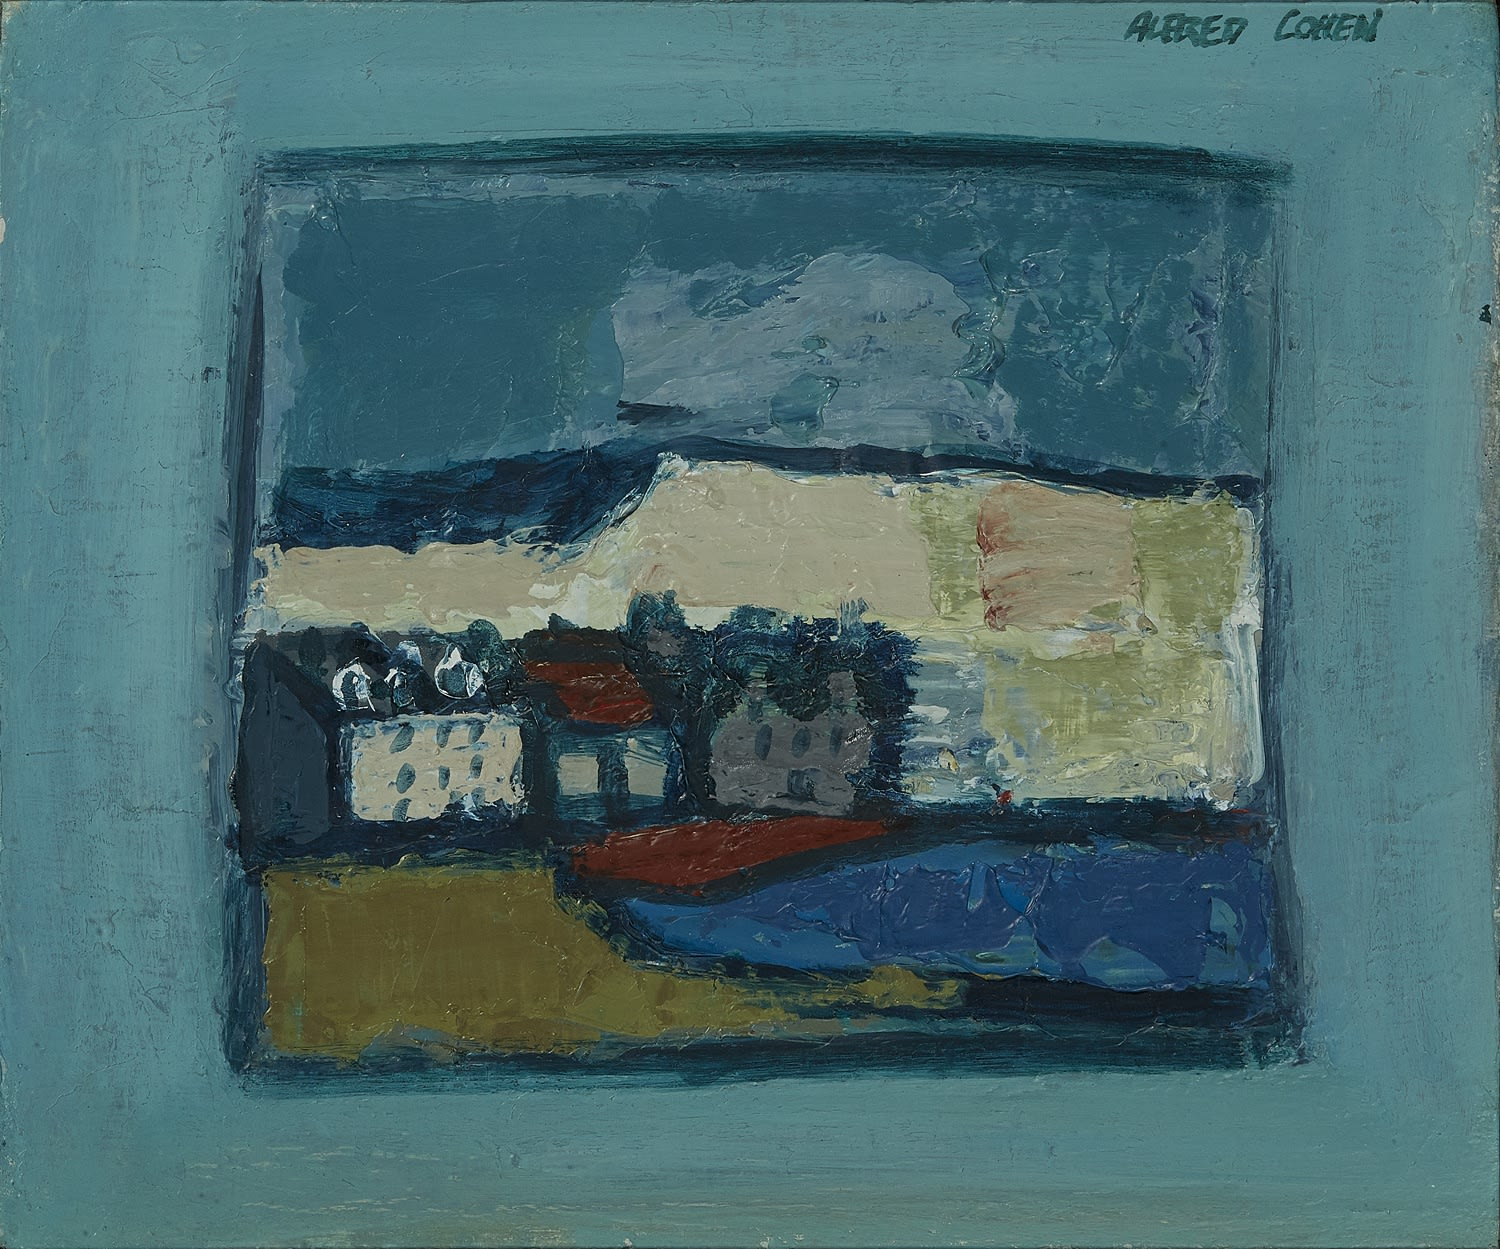 Alfred Cohen (1920-2001) Small Haven c. 1968 Oil on board 25.4 x 30.5 cm Private Collection © Estate of Alfred Cohen 2020